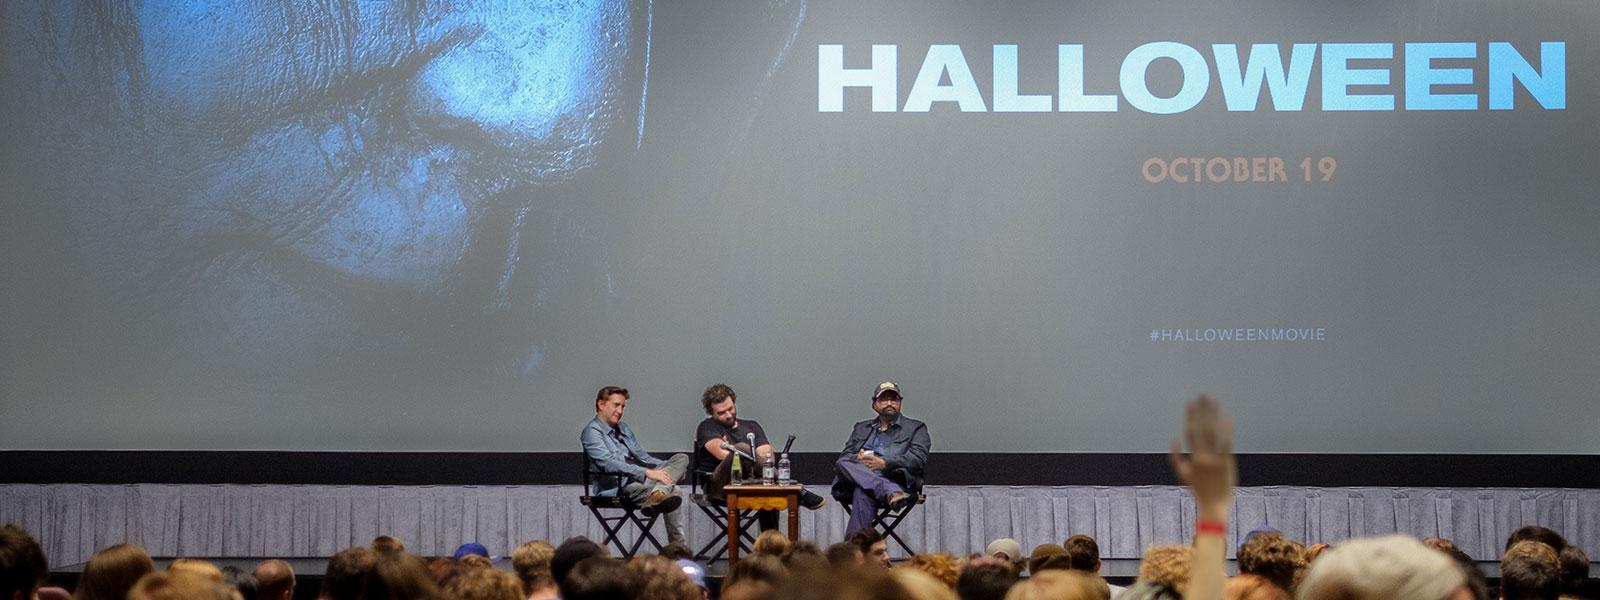 "Alumni David Gordon Green, Danny McBride and Jeff Fradley screen ""Halloween,"" a film they co-wrote, for students ahead of its theatrical release, 2018."